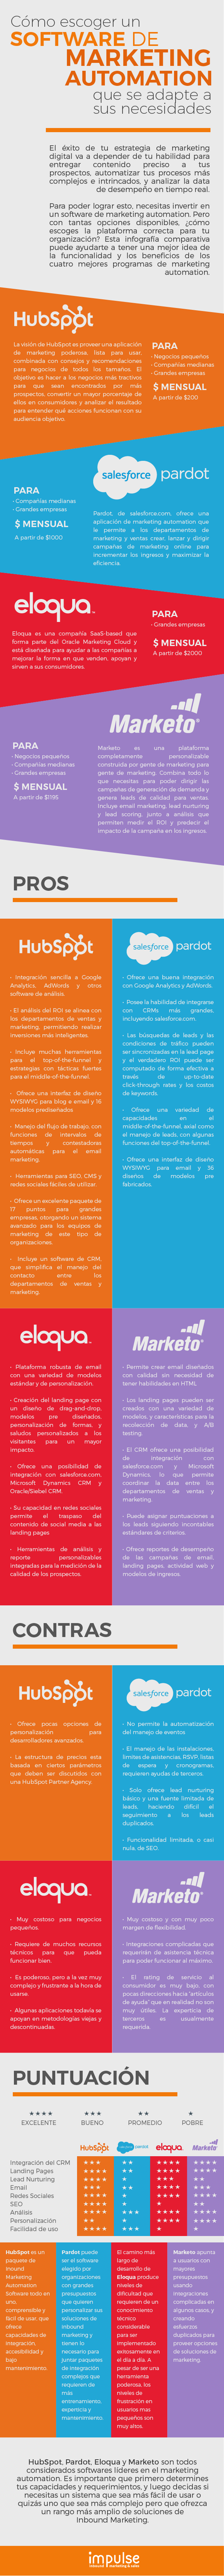 Como escoger un software de marketing automation que se adapte tus necesidades.png